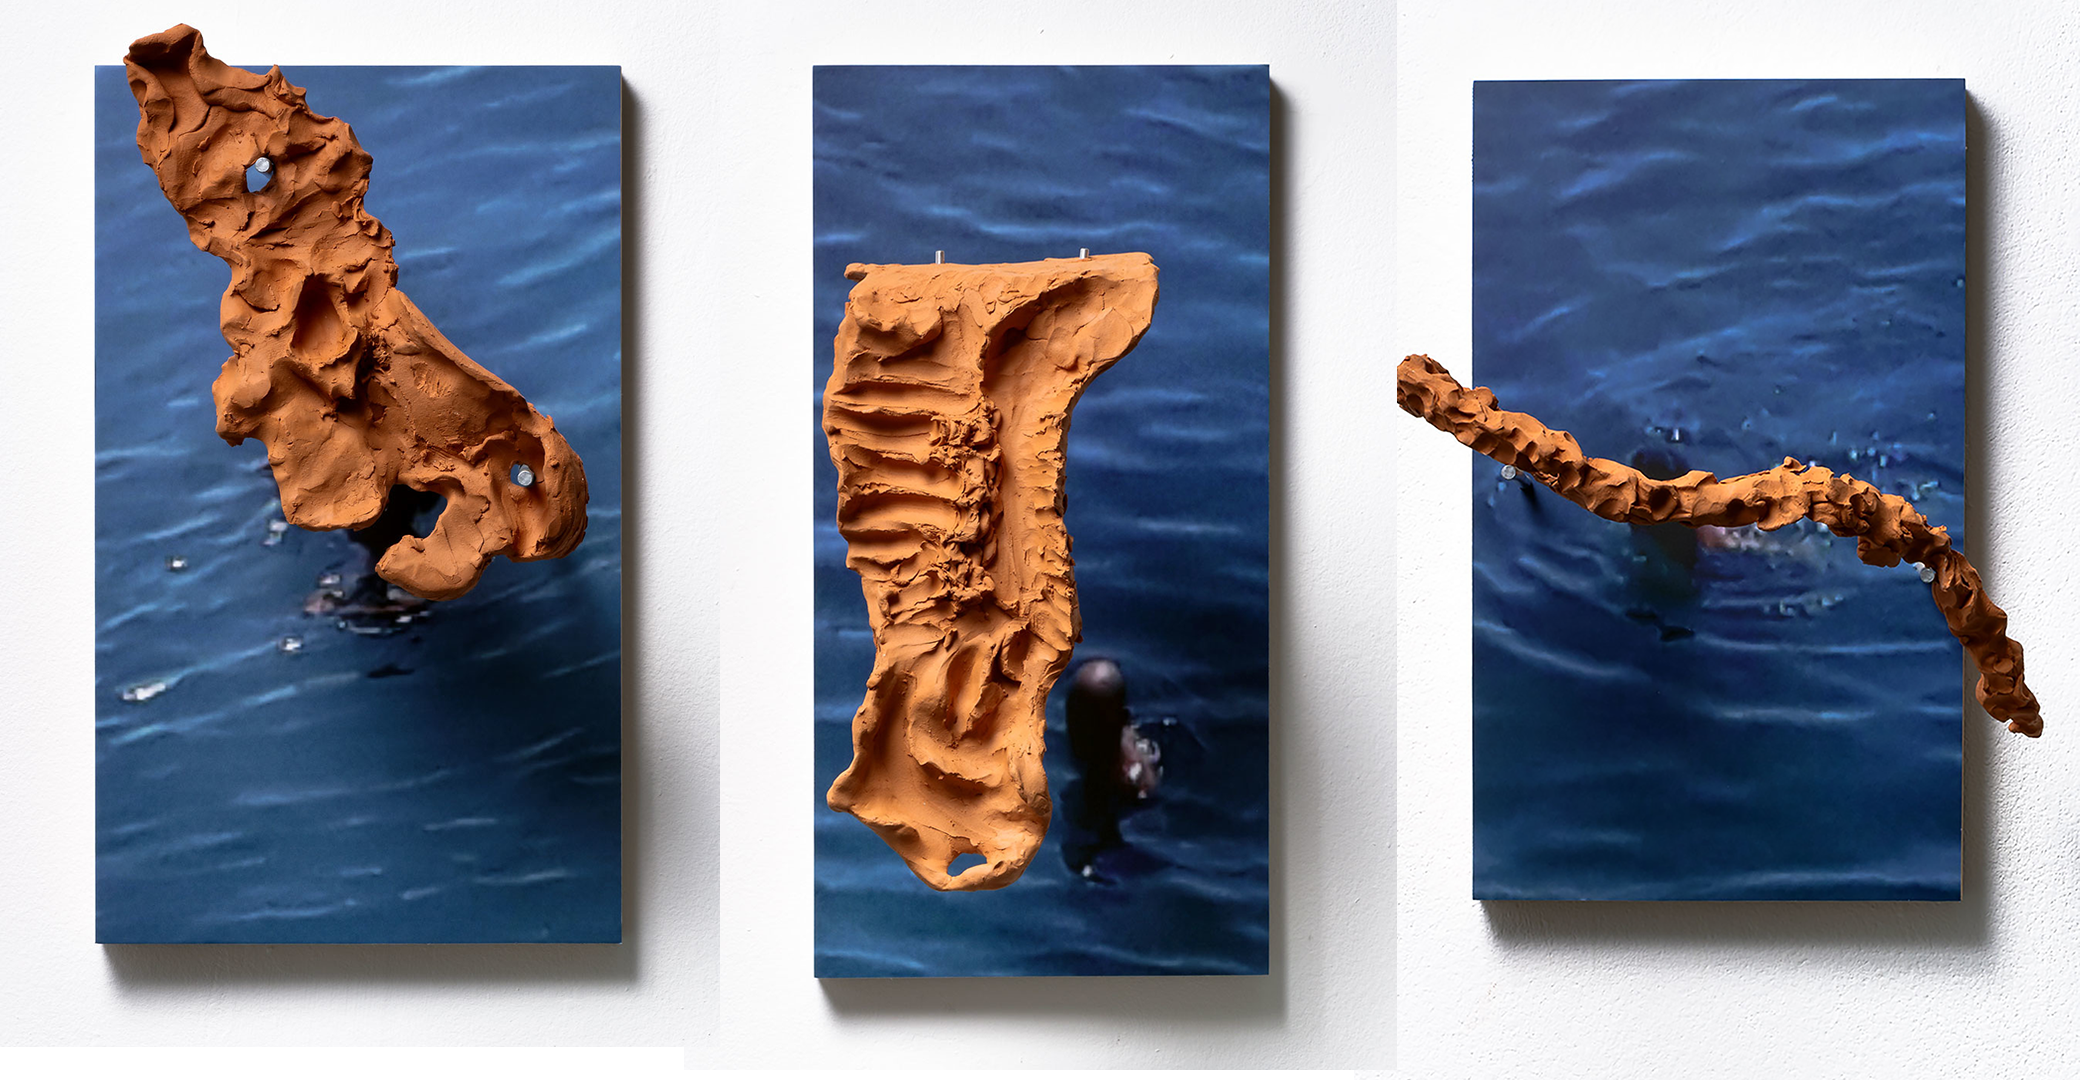 Bodies-Made-Of-Water-Series-of-7-sculptures-with-photographs-UV-Print-of-cell-phone-screen-grabs-on-wood-steel-hangers-terra-cotta-ceramics-30-x-60-cm-or-30-x-50-cm-2020-1